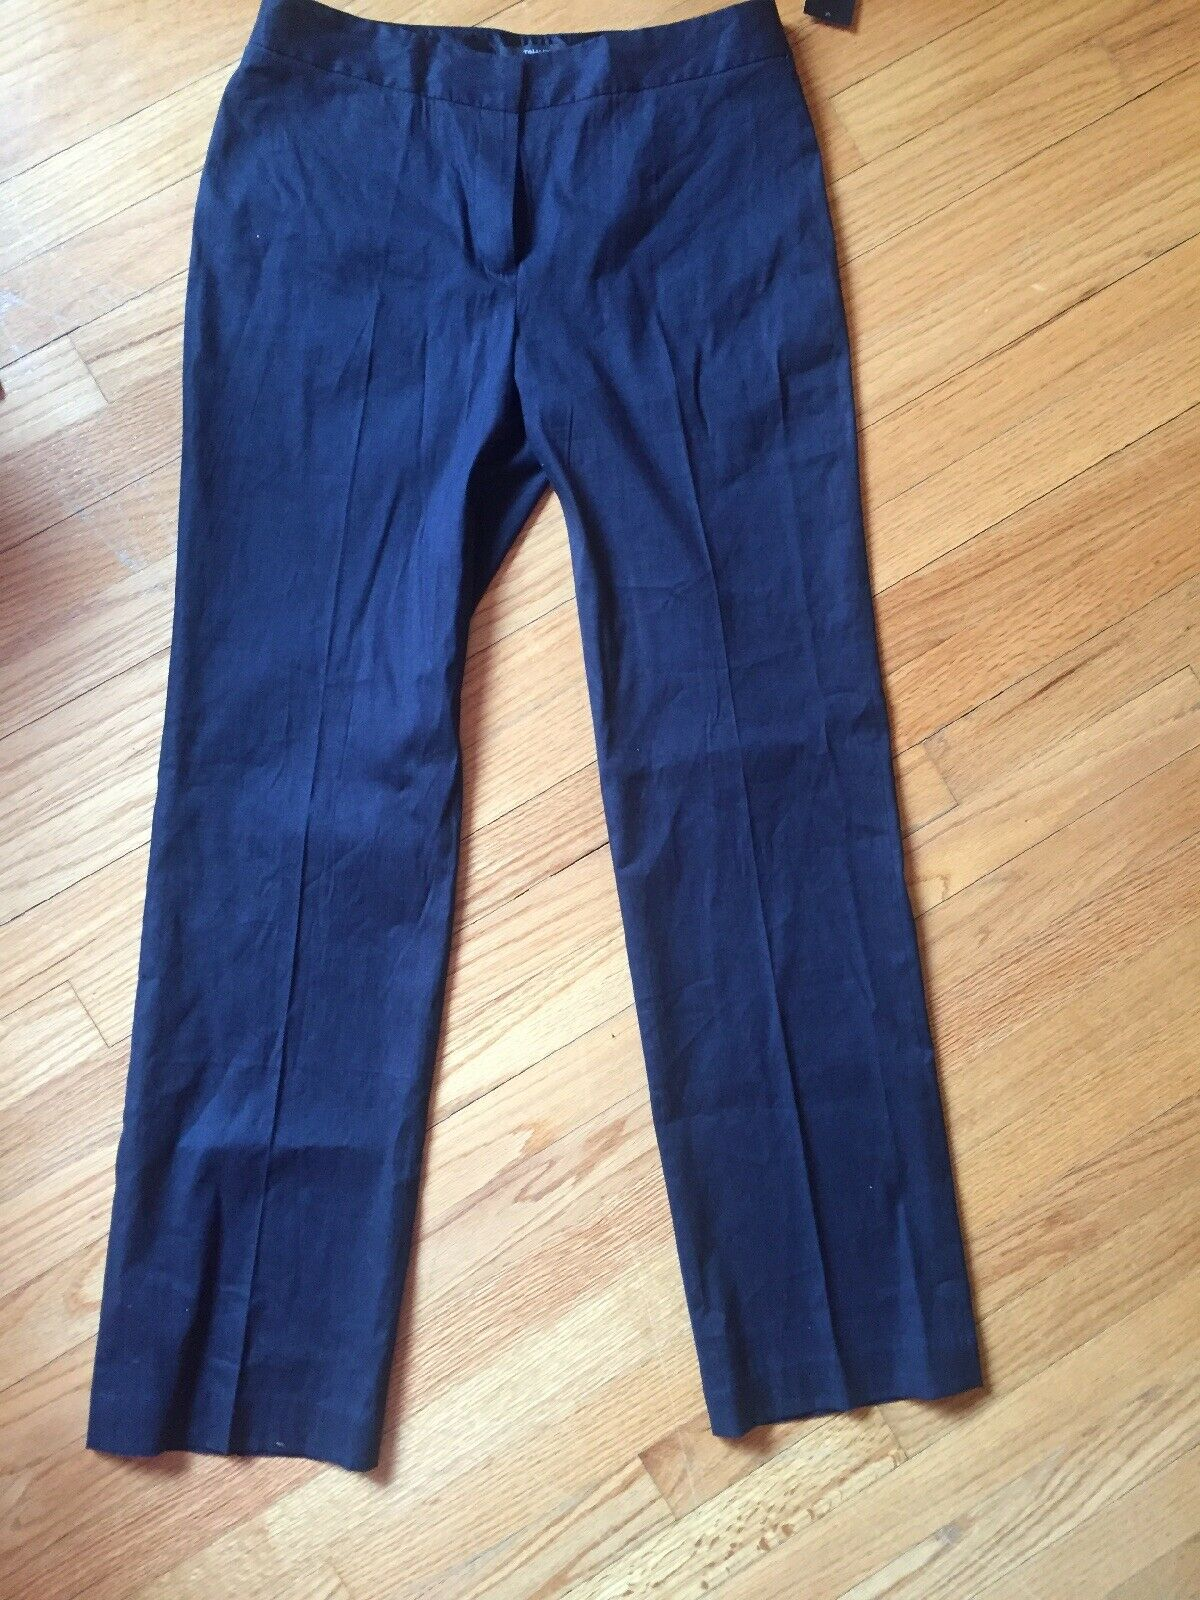 Tahari Navy Pants, Size Us 8